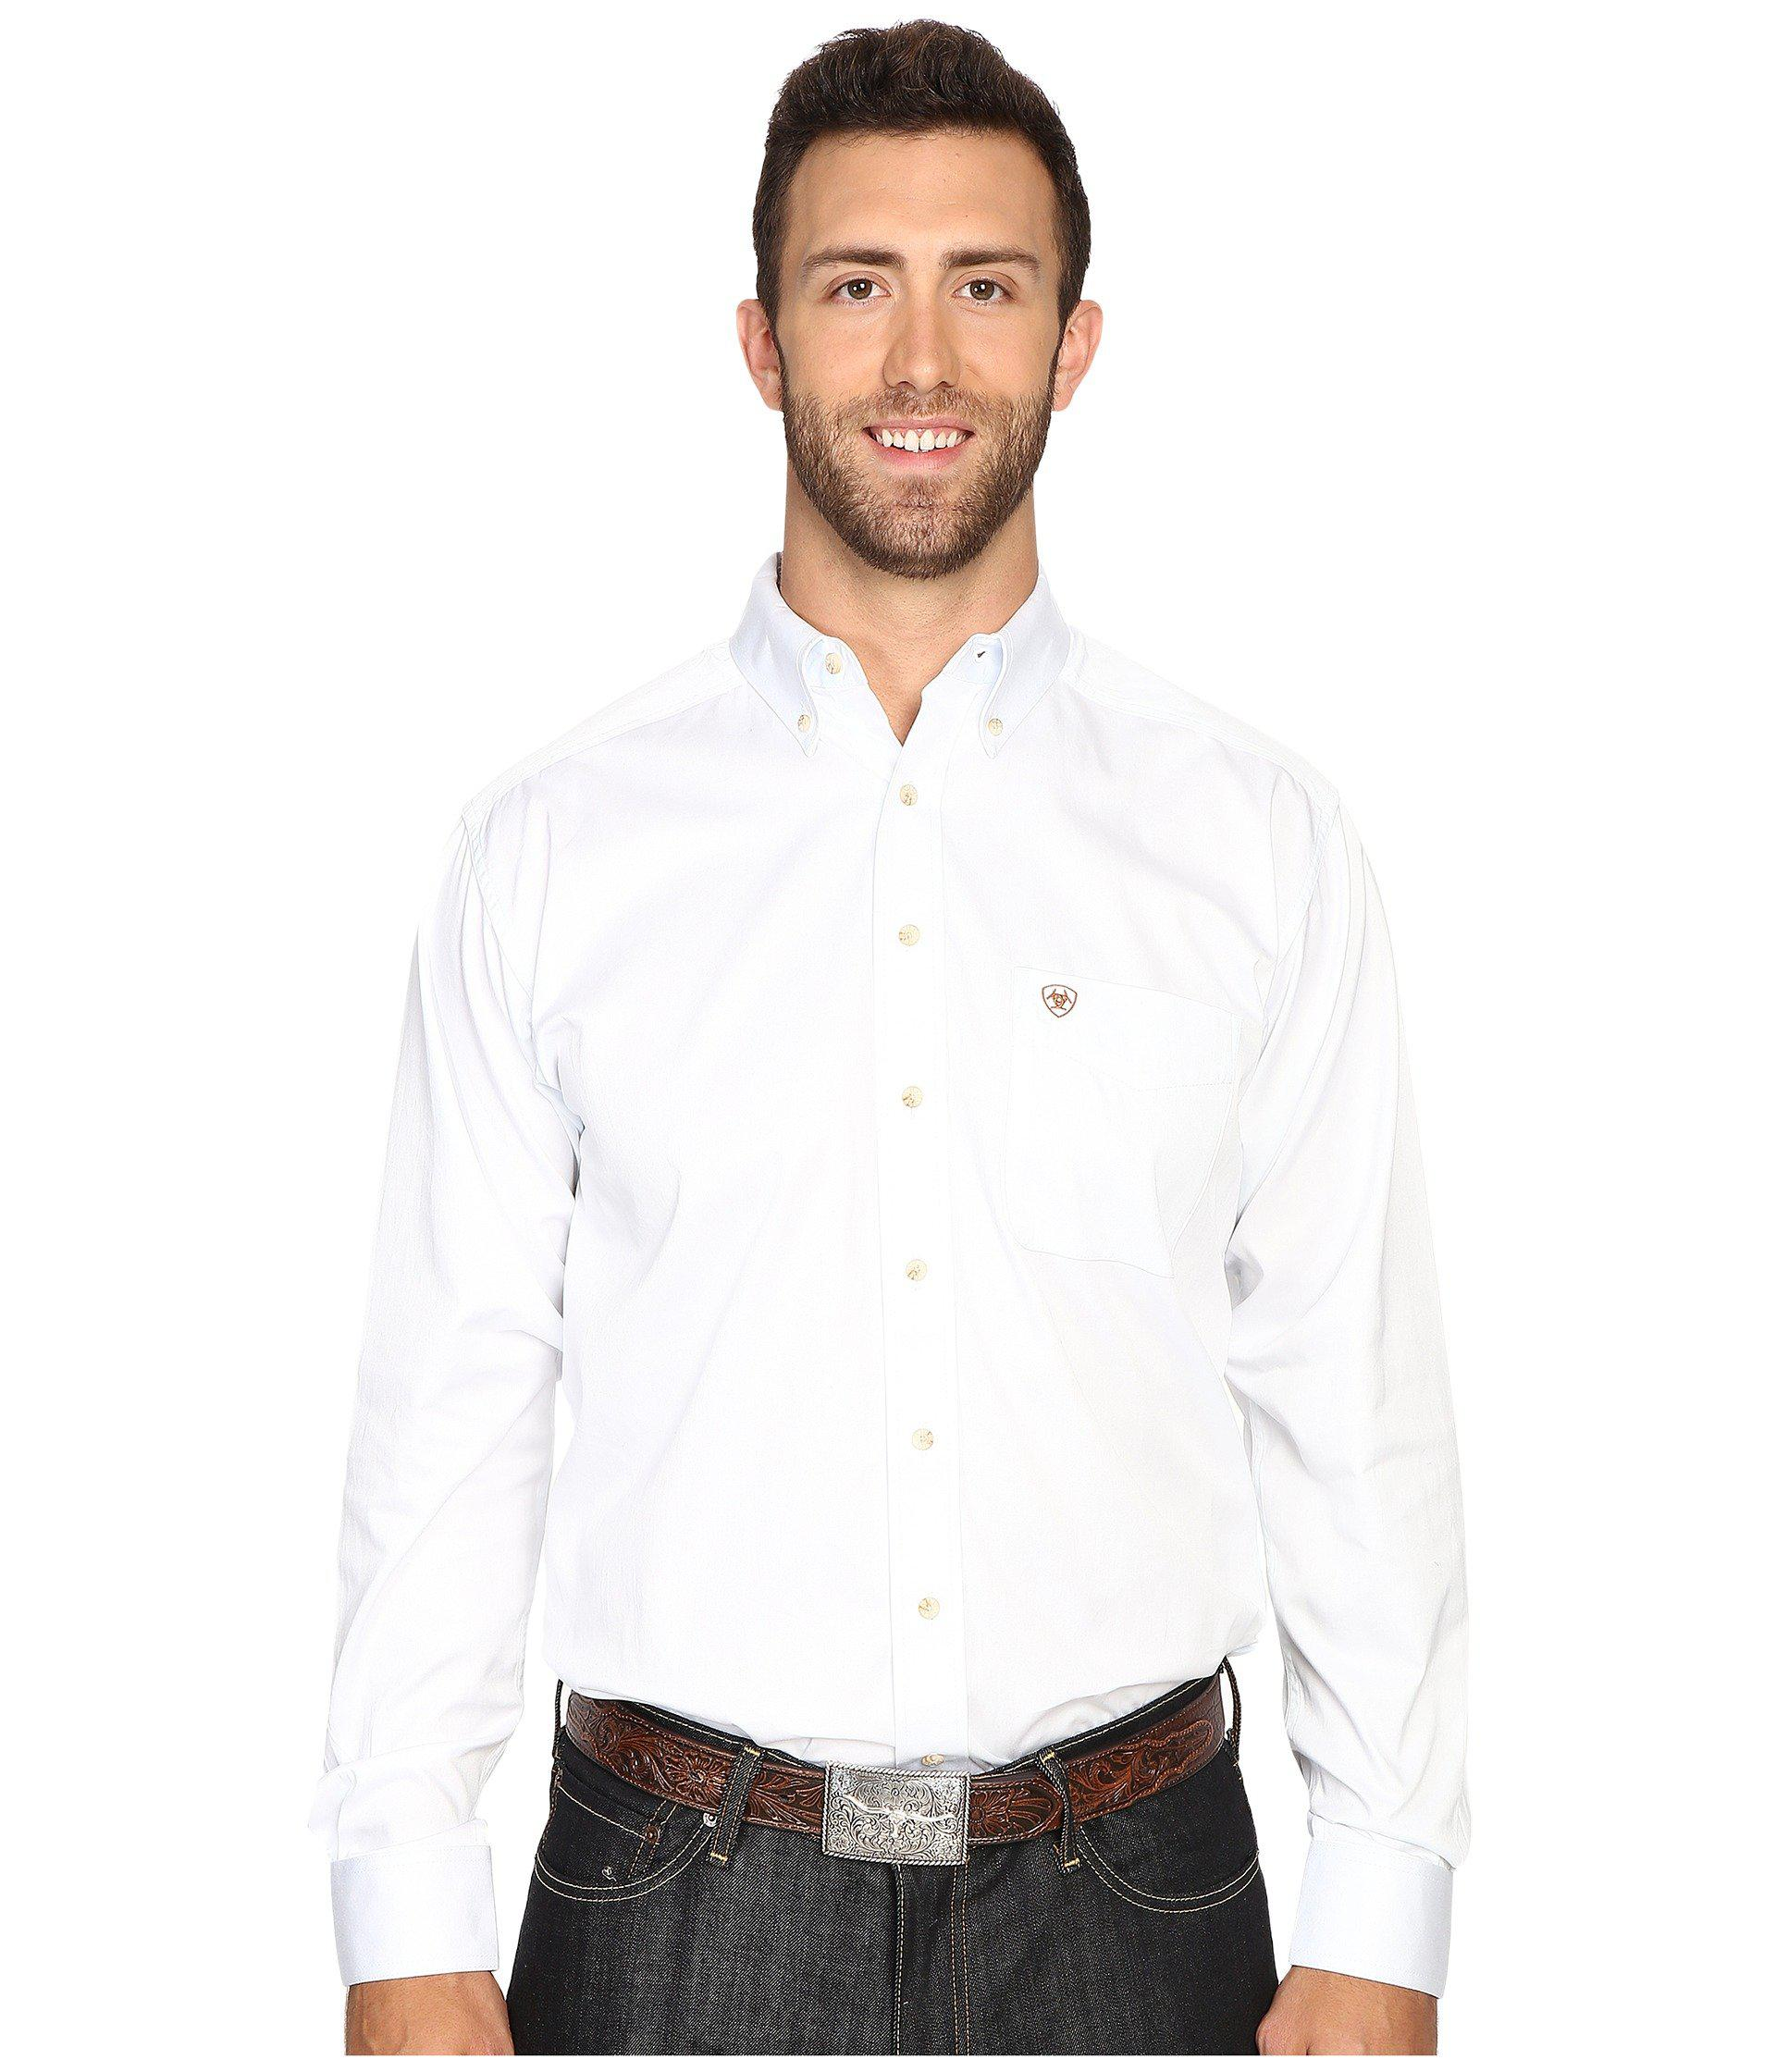 ccf4f72f986 Big Tall Mens Dress Shirts